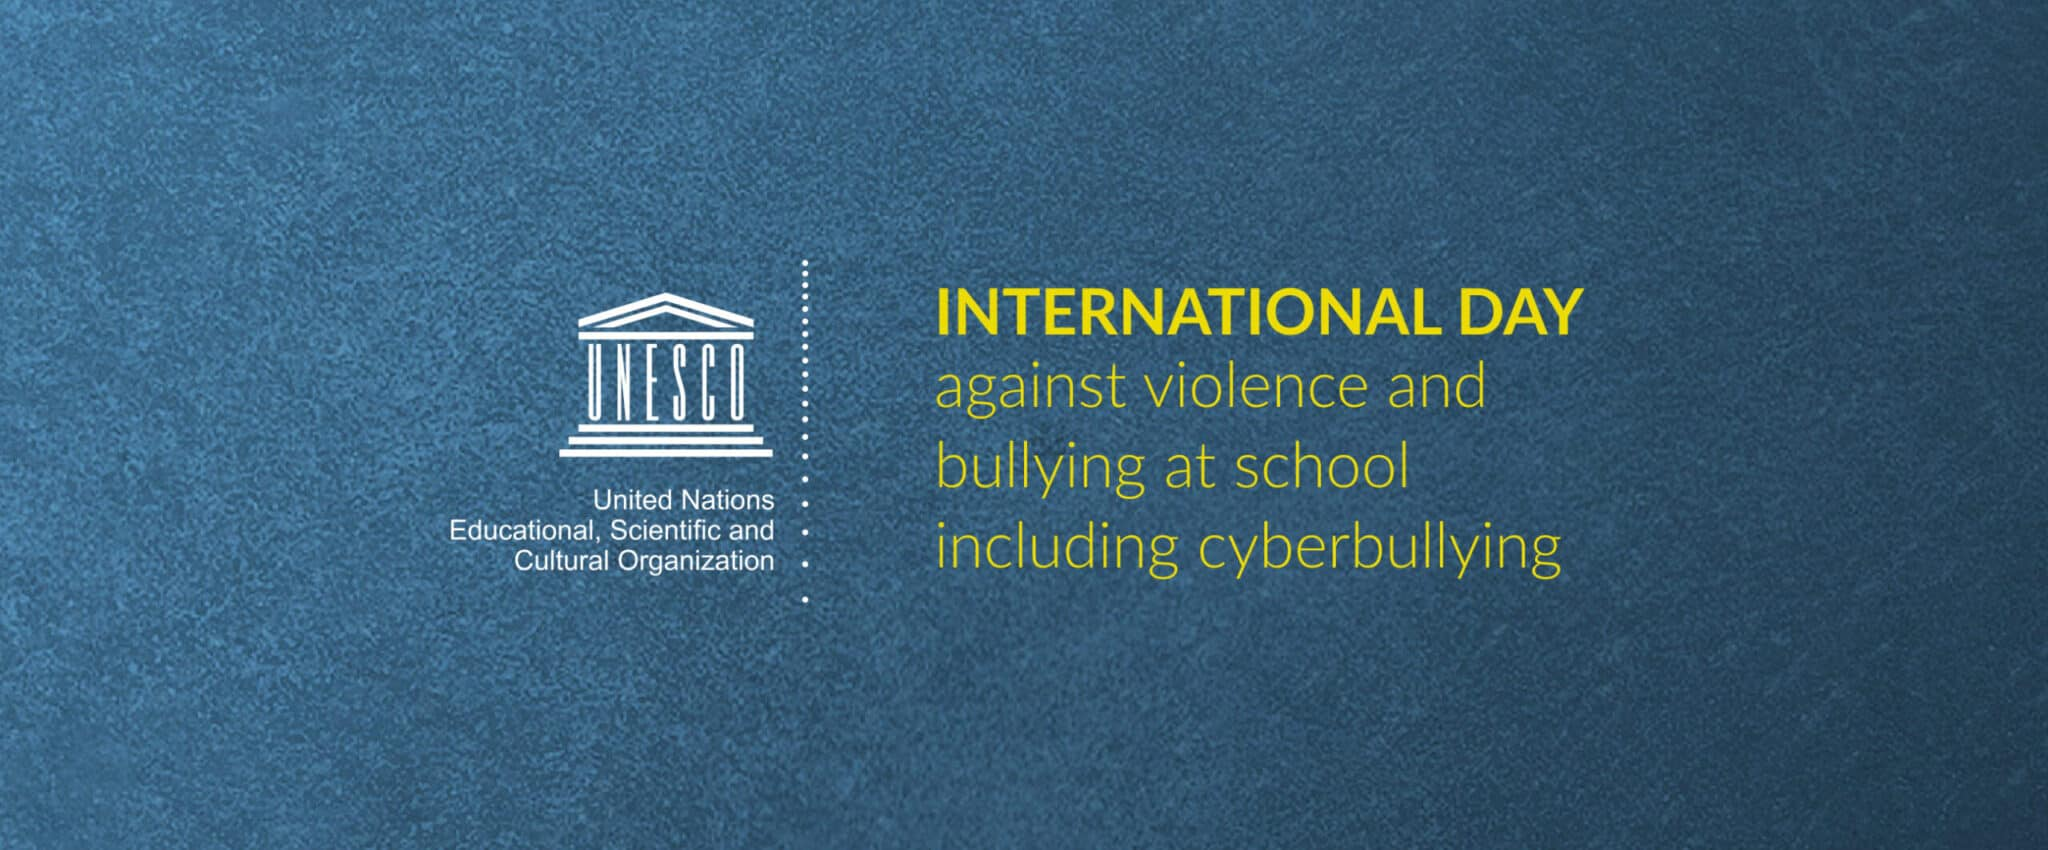 Dr Milosevic testifying at the UN and Irish Parliament on cyberbullying